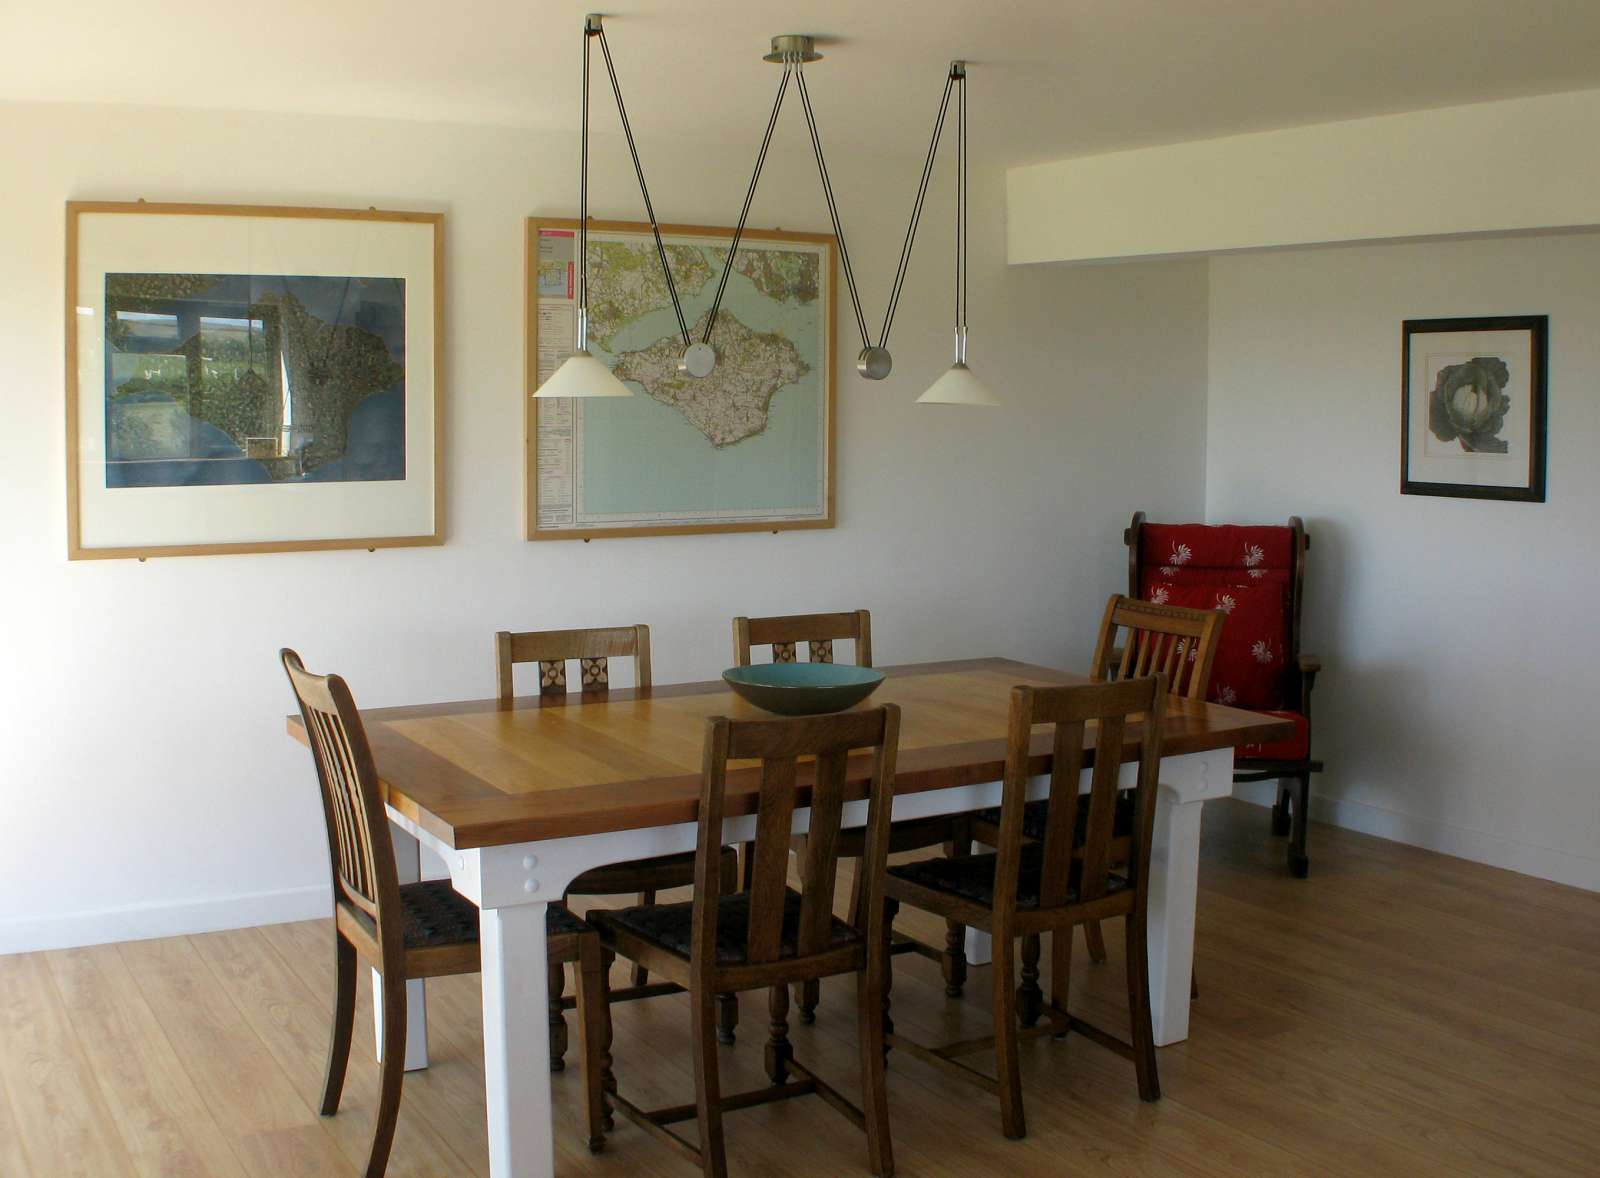 Holiday rental Cottage in Shorwell - The dining area of The Little Barn seats 6 and bi-fold doors opening out onto the deck and parking area.